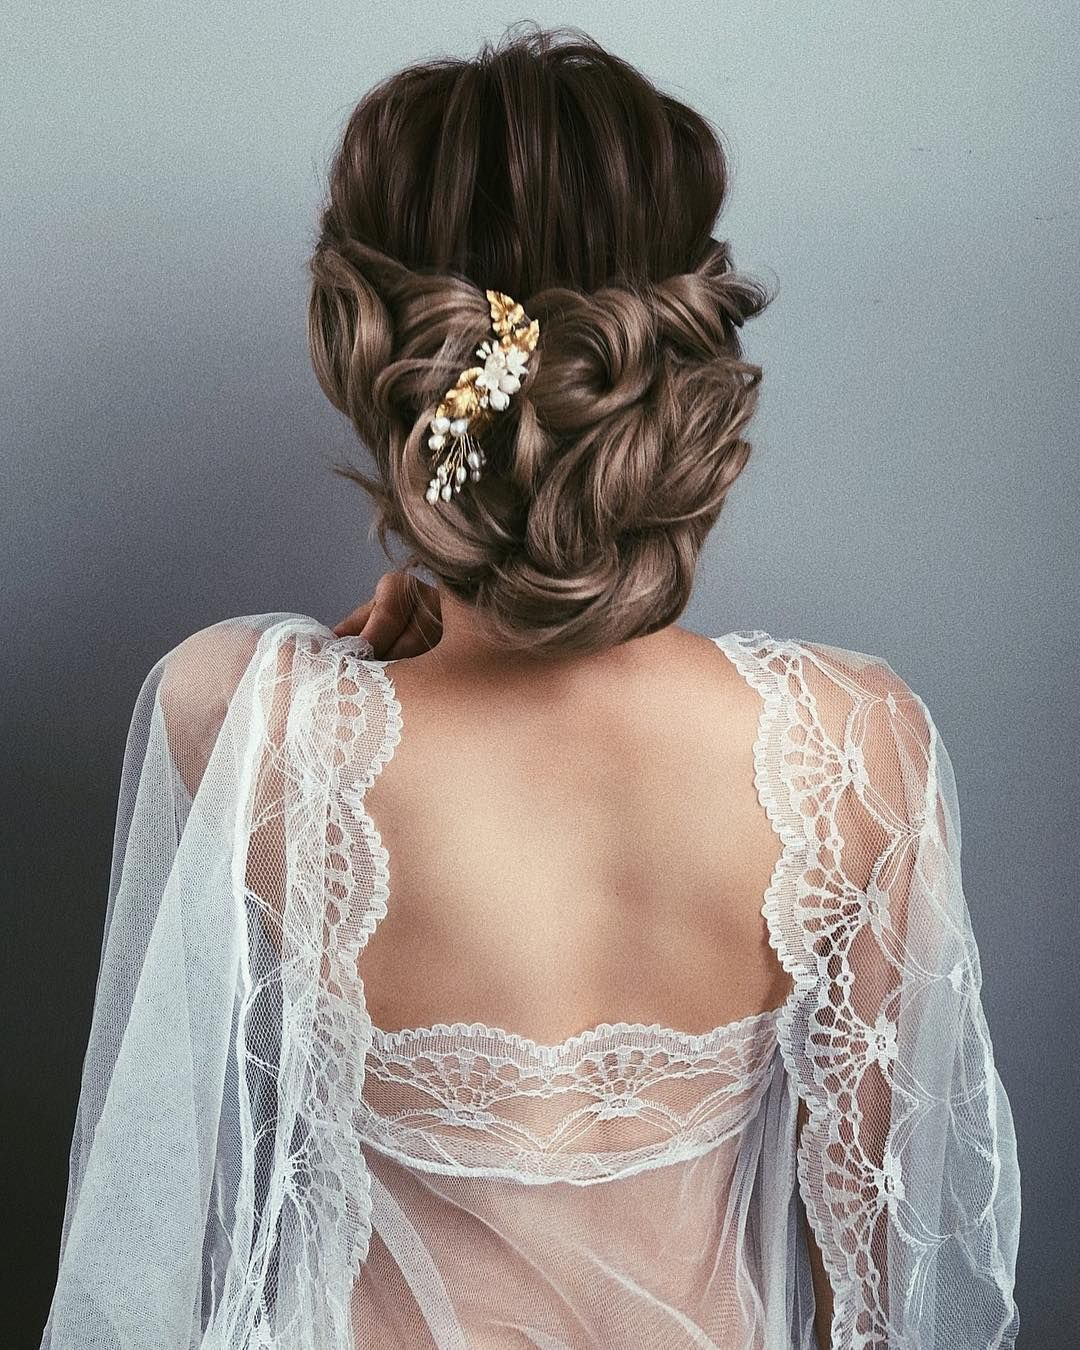 87 Fabulous Wedding Hairstyles For Every Wedding Dress Neckline Wedding Dress Necklines Wedding Hairstyles Bride Hair Down